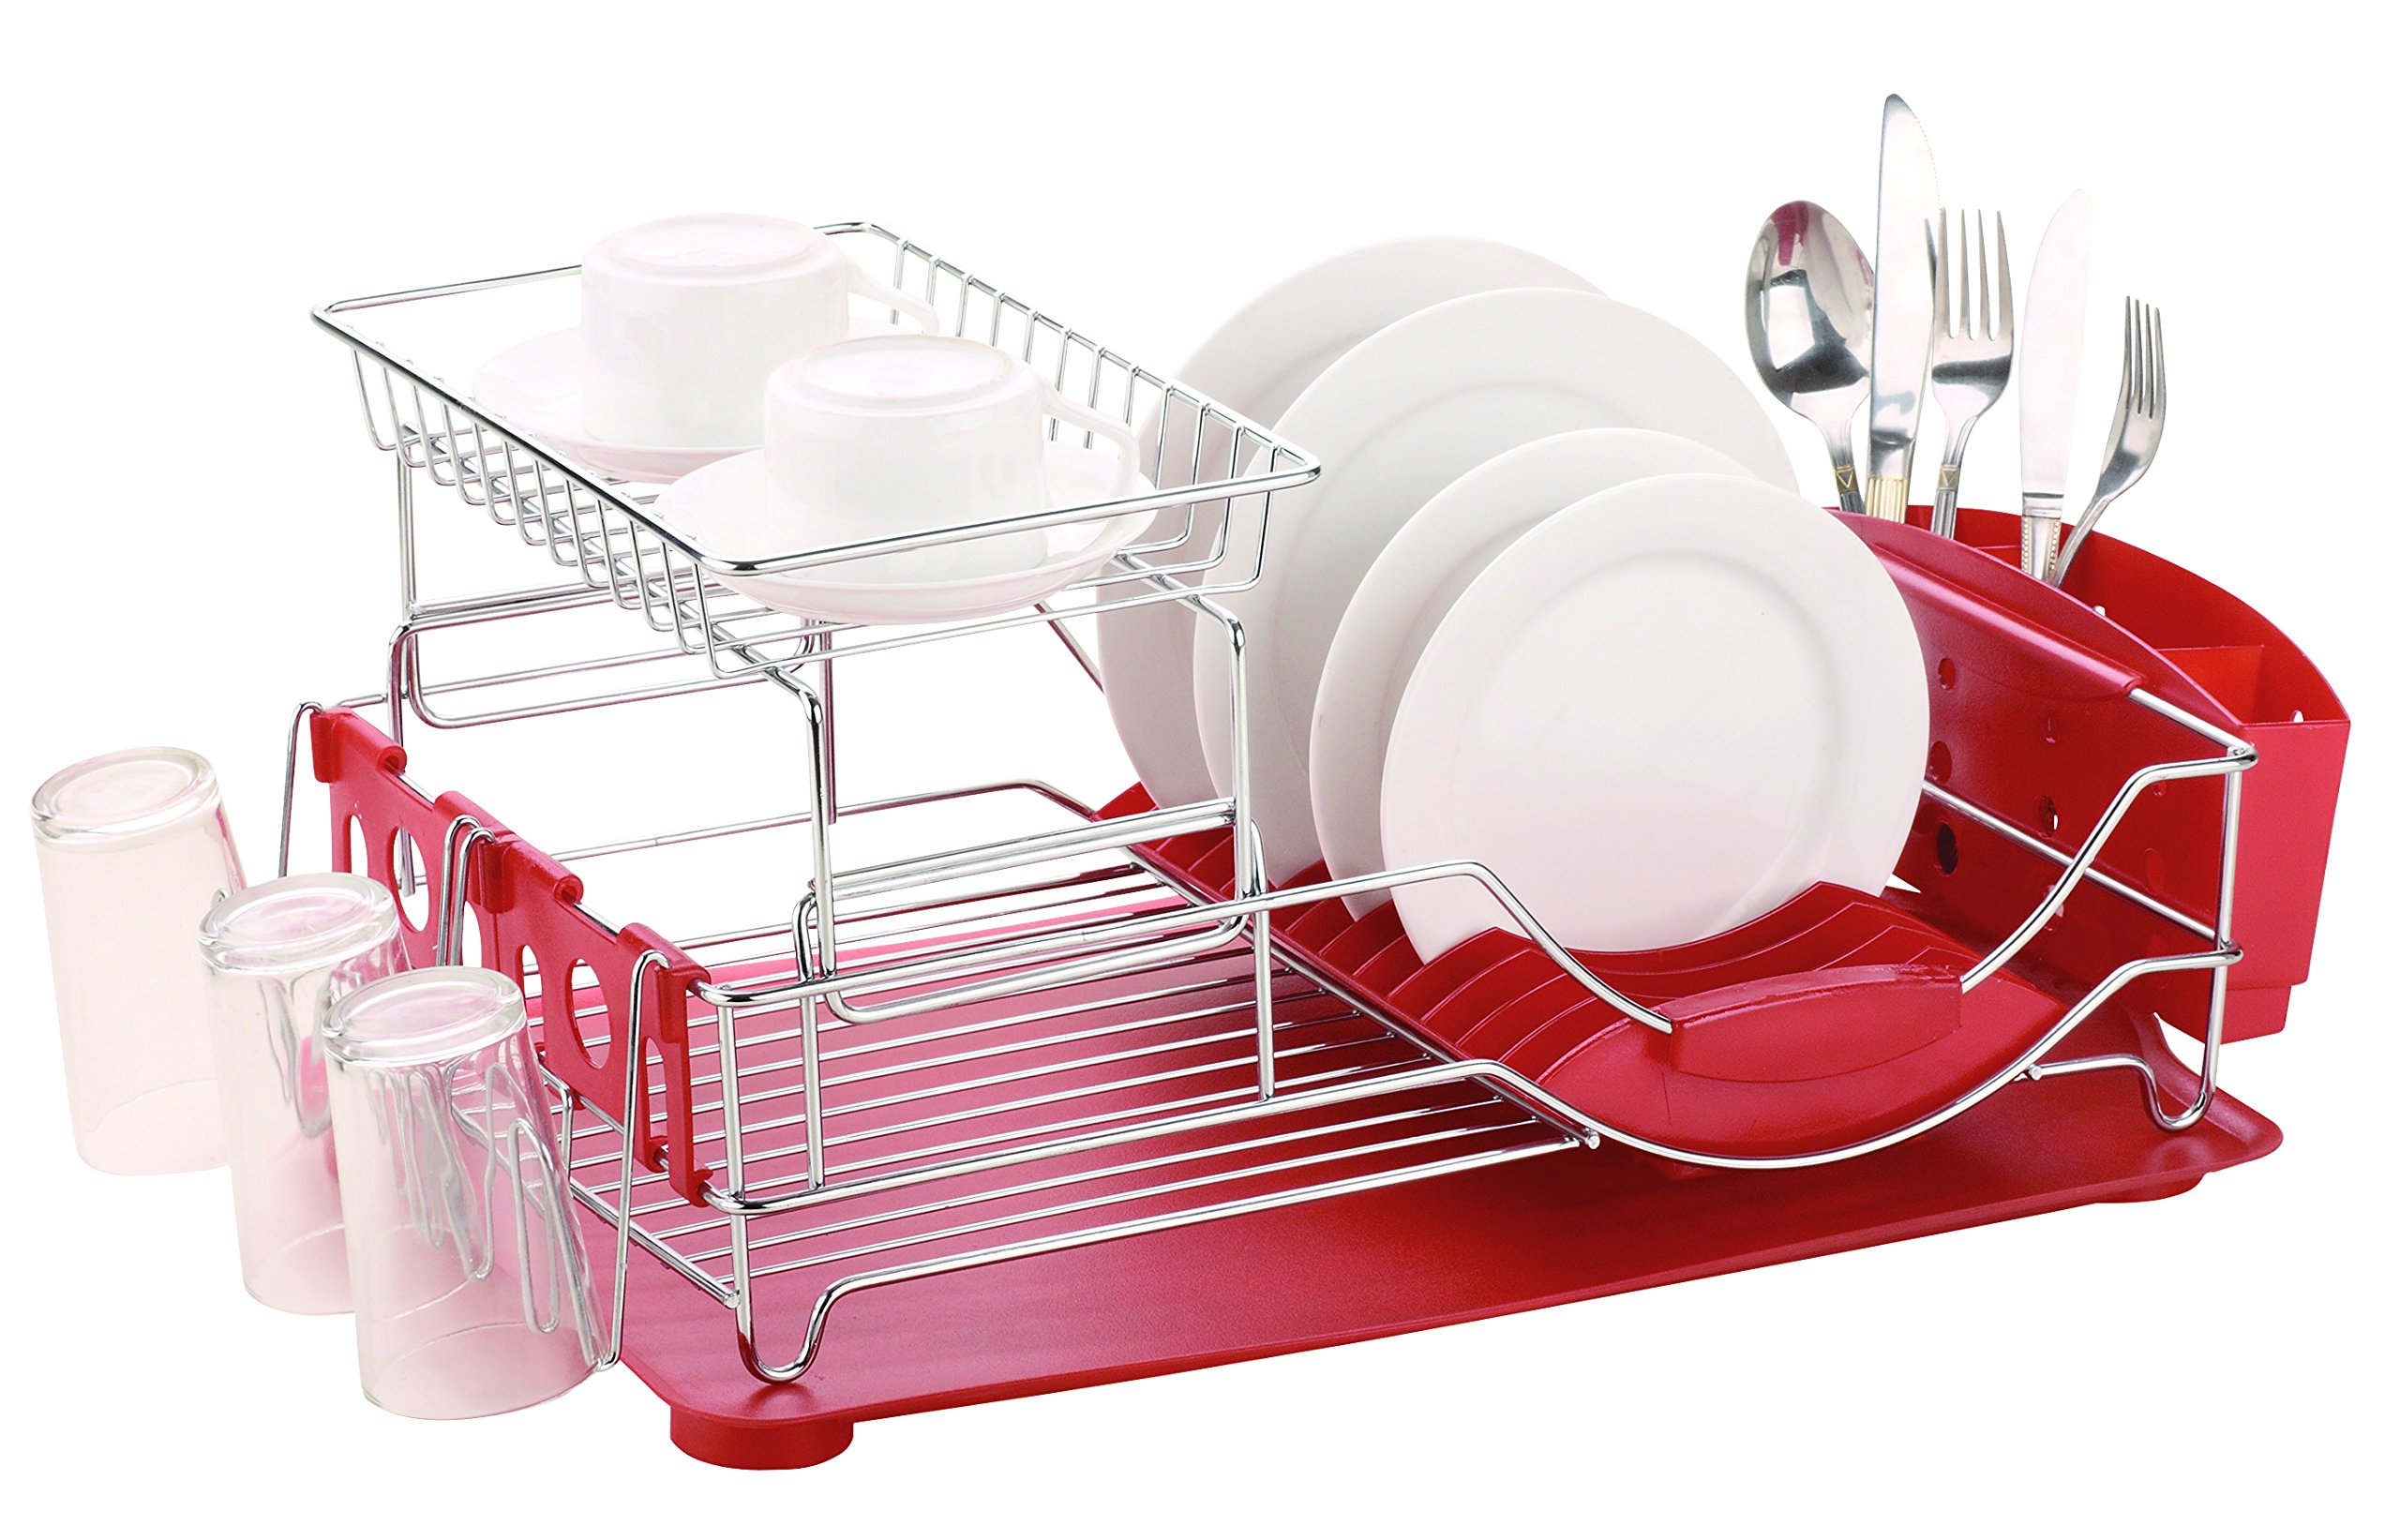 Home Basics DELUXE 2-Tier Dish RACK and Drainer, Red